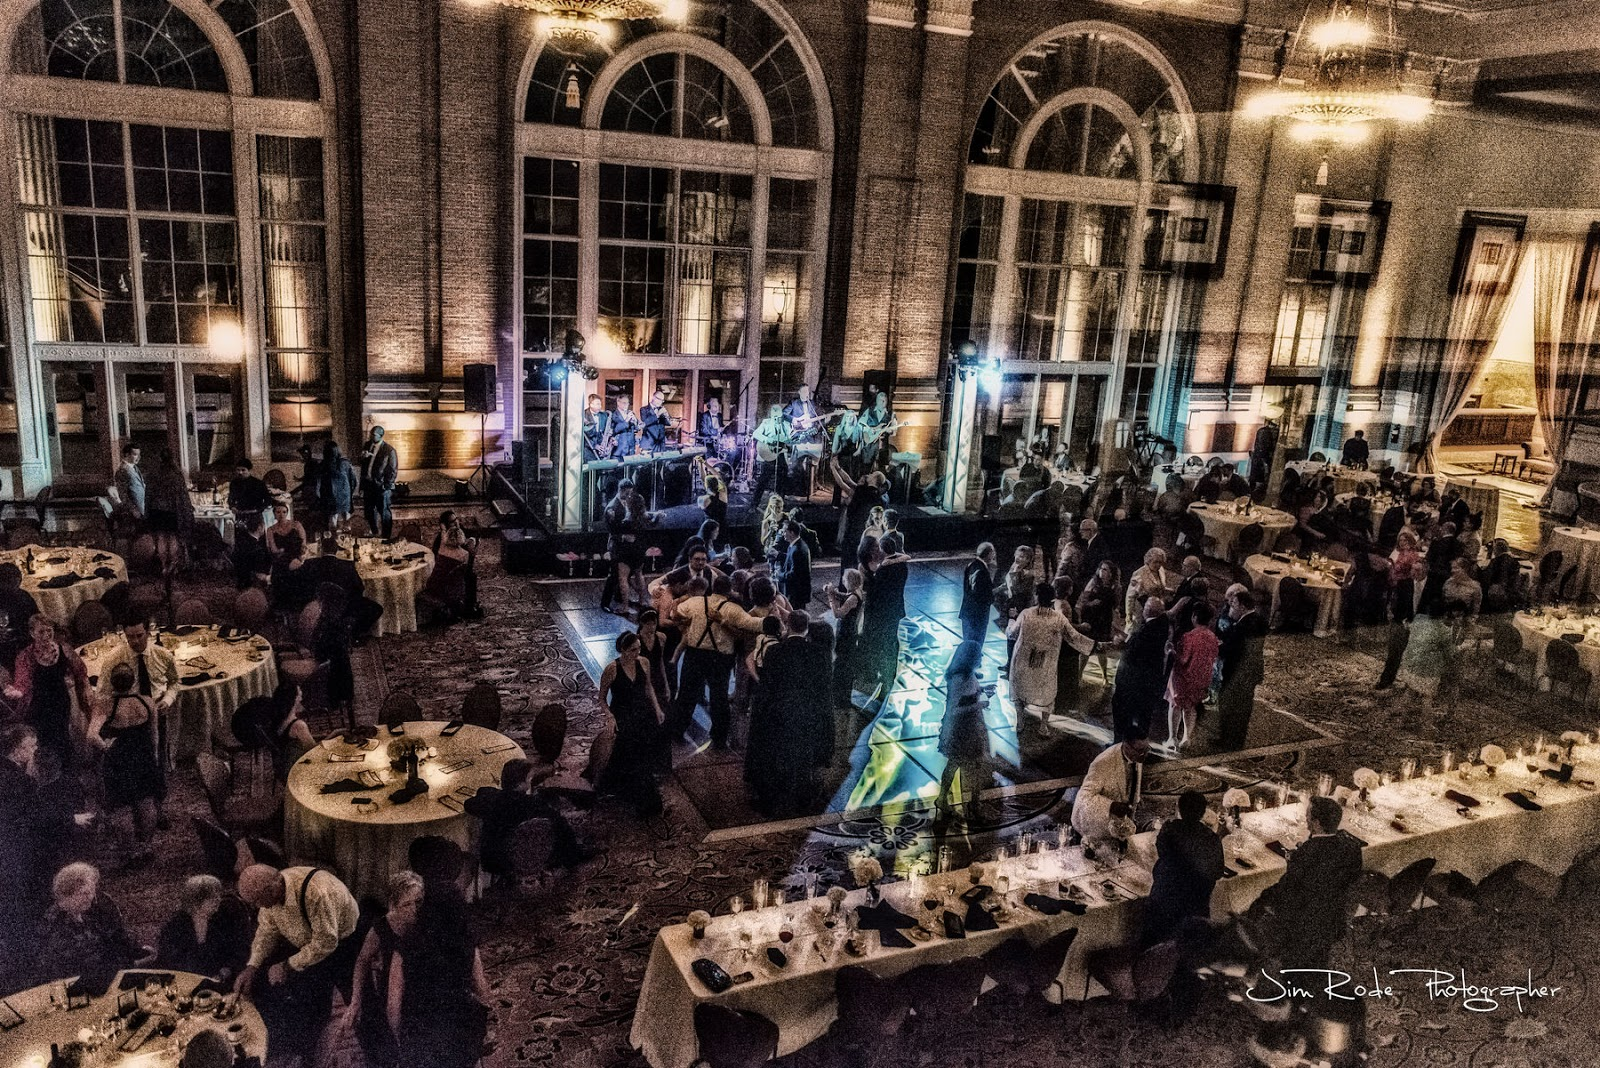 The reception and dance goes into the night at the Union Station wedding.